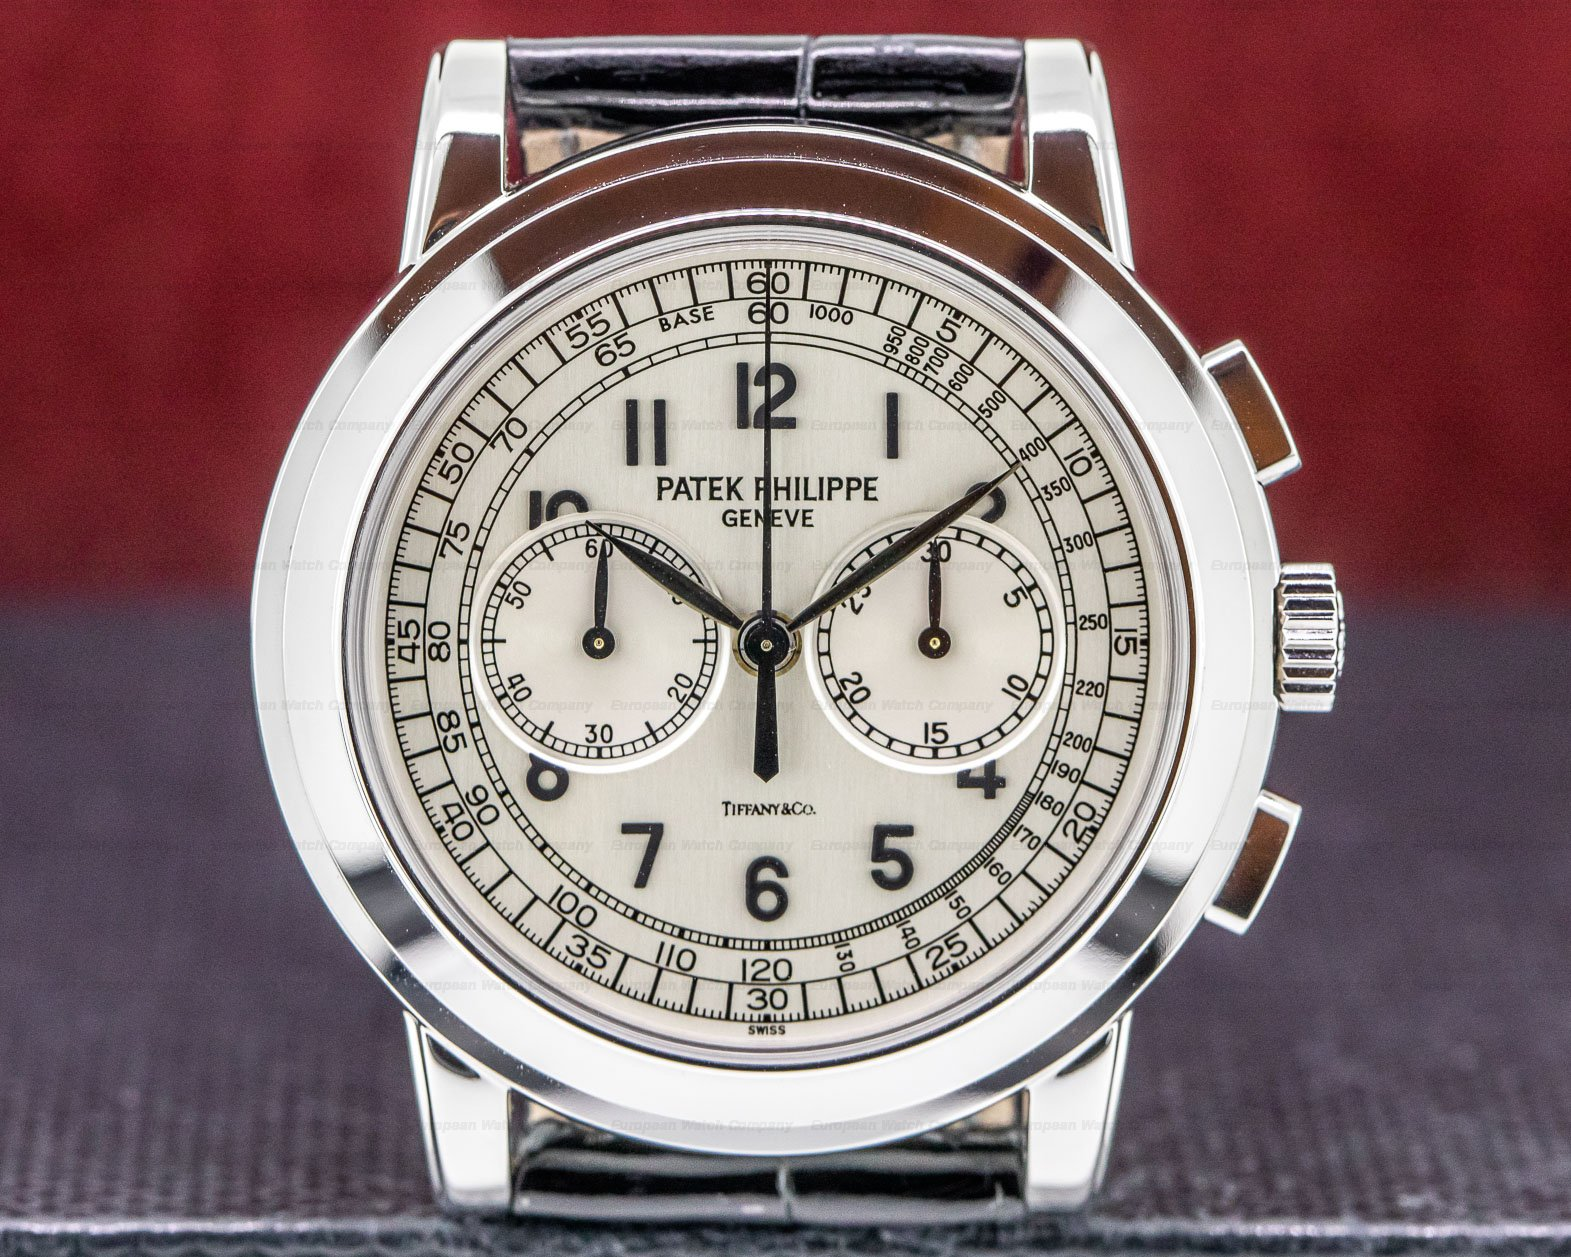 Patek Philippe 5070G Tiffany & Co 5070 TIFFANY & CO White Gold Chronograph UNWORN